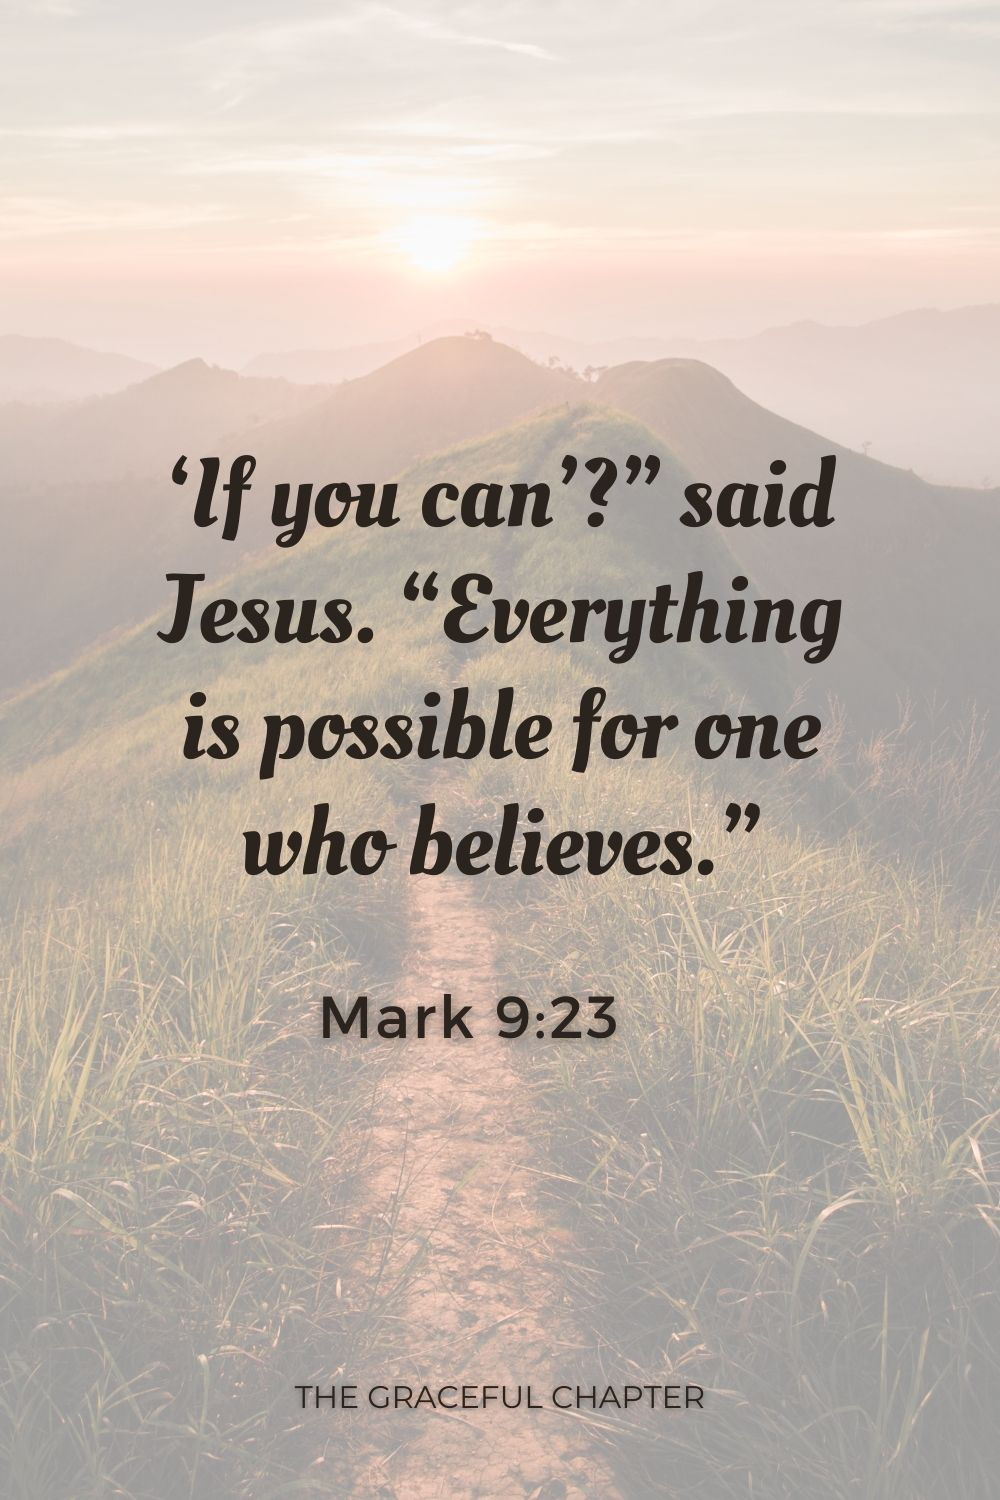 """If you can'?"""" said Jesus. """"Everything is possible for one who believes."""" Mark 9:23"""